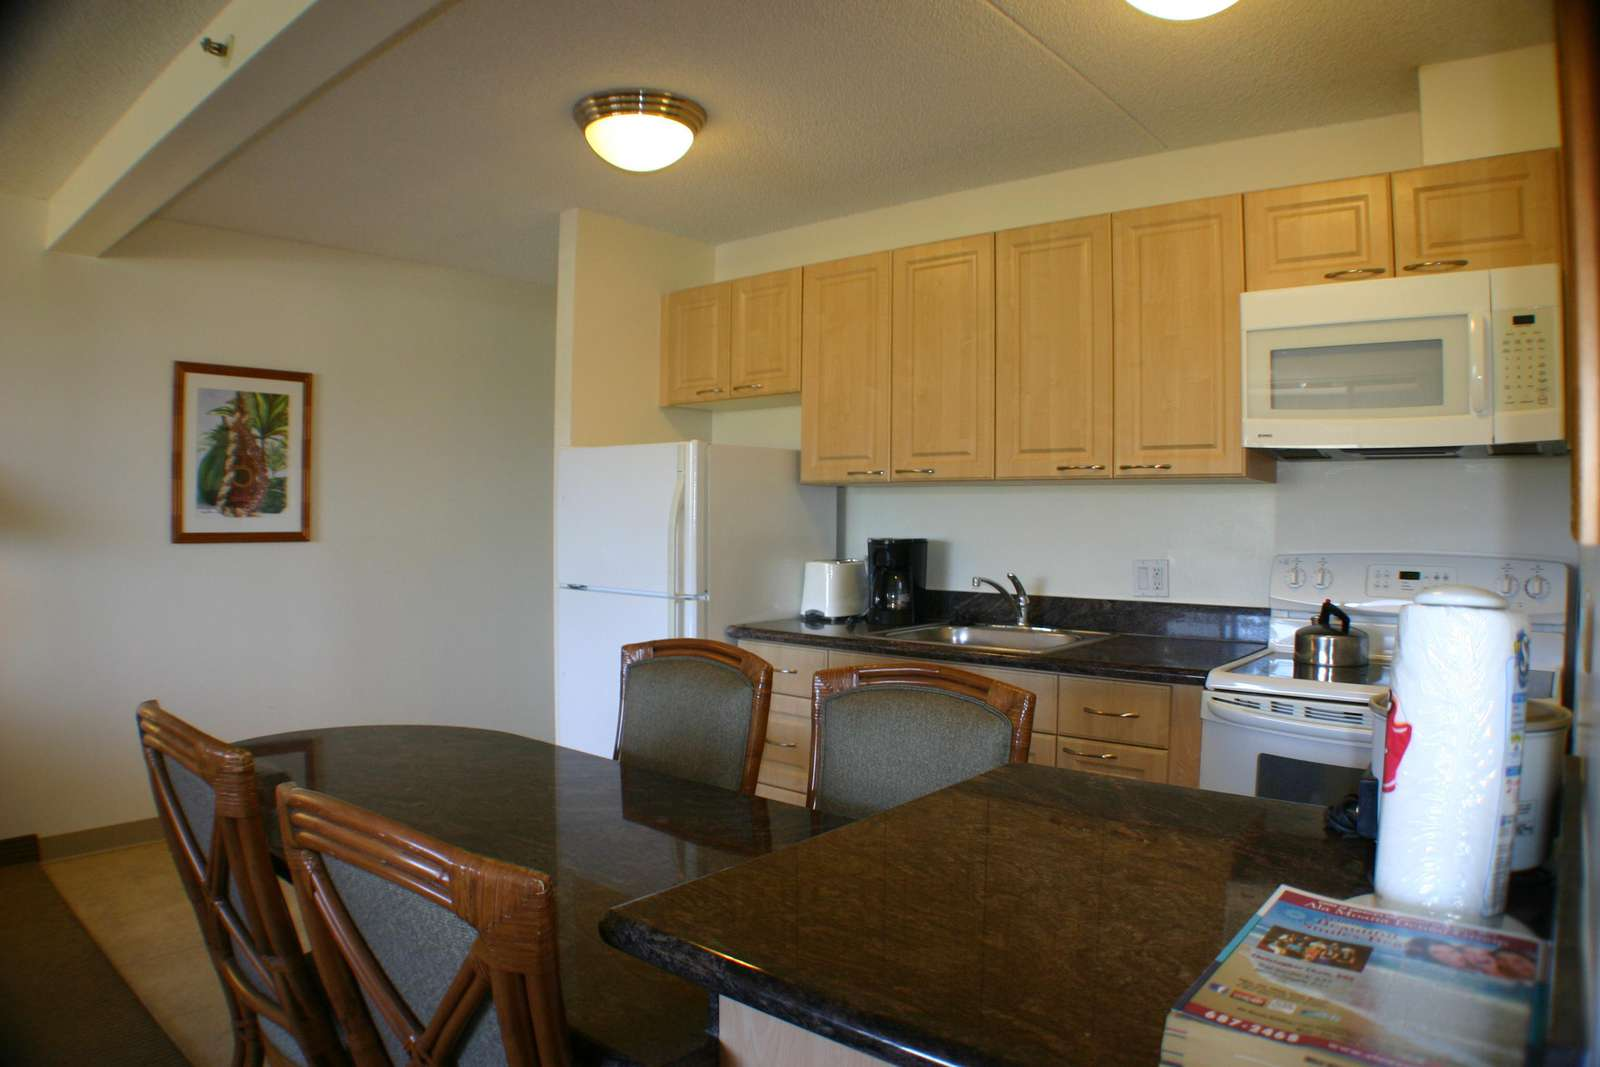 Fully Equipped Kitchen to Enjoy Home-Cooked meals